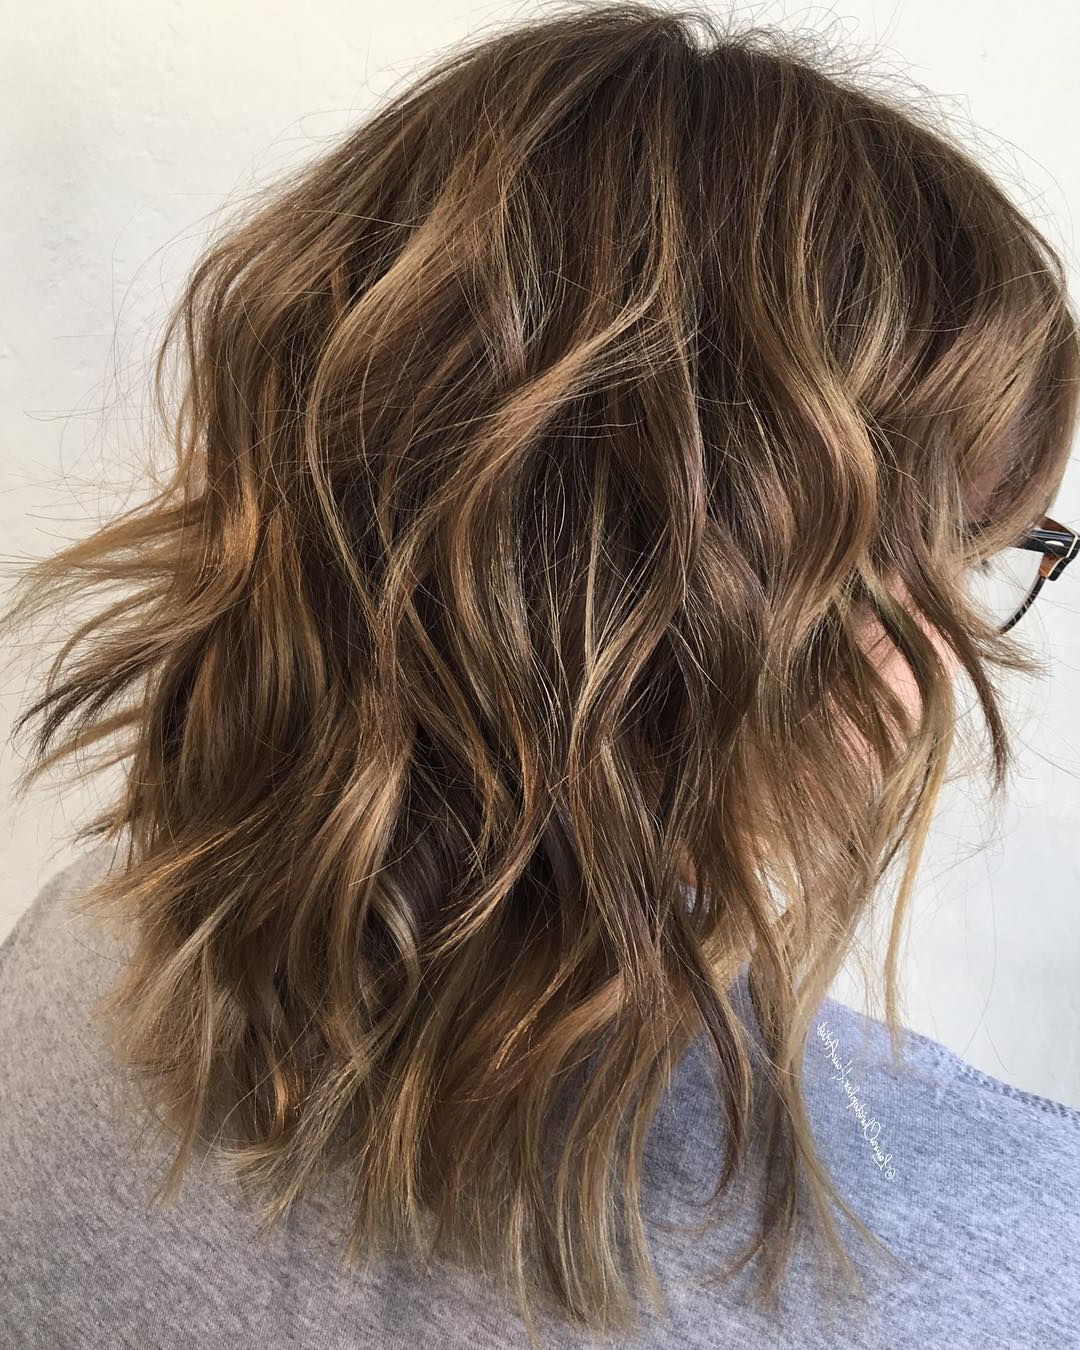 125 Coolest Shag Haircuts For All Ages – Prochronism Pertaining To Best And Newest Natural Layers And Ombre Highlights Long Shag Hairstyles (View 1 of 20)